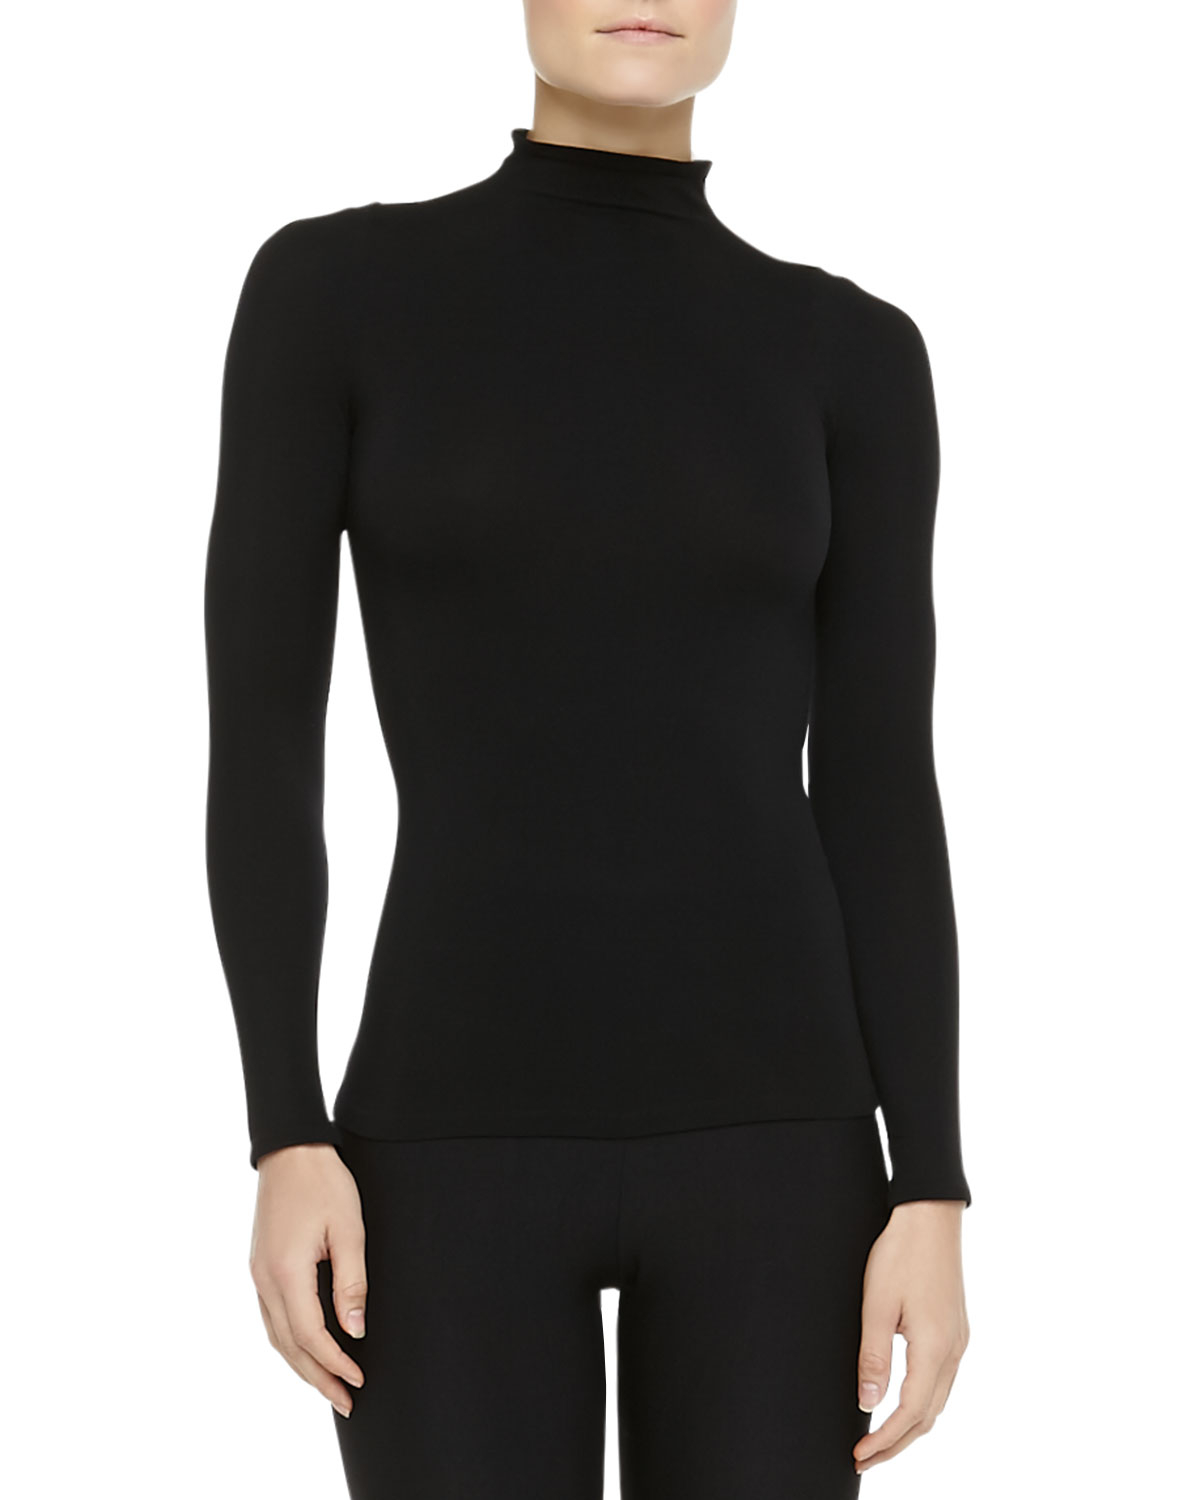 Find great deals on eBay for Mens Black Mock Turtleneck in Casual Shirts for Different Occasions. Shop with confidence.